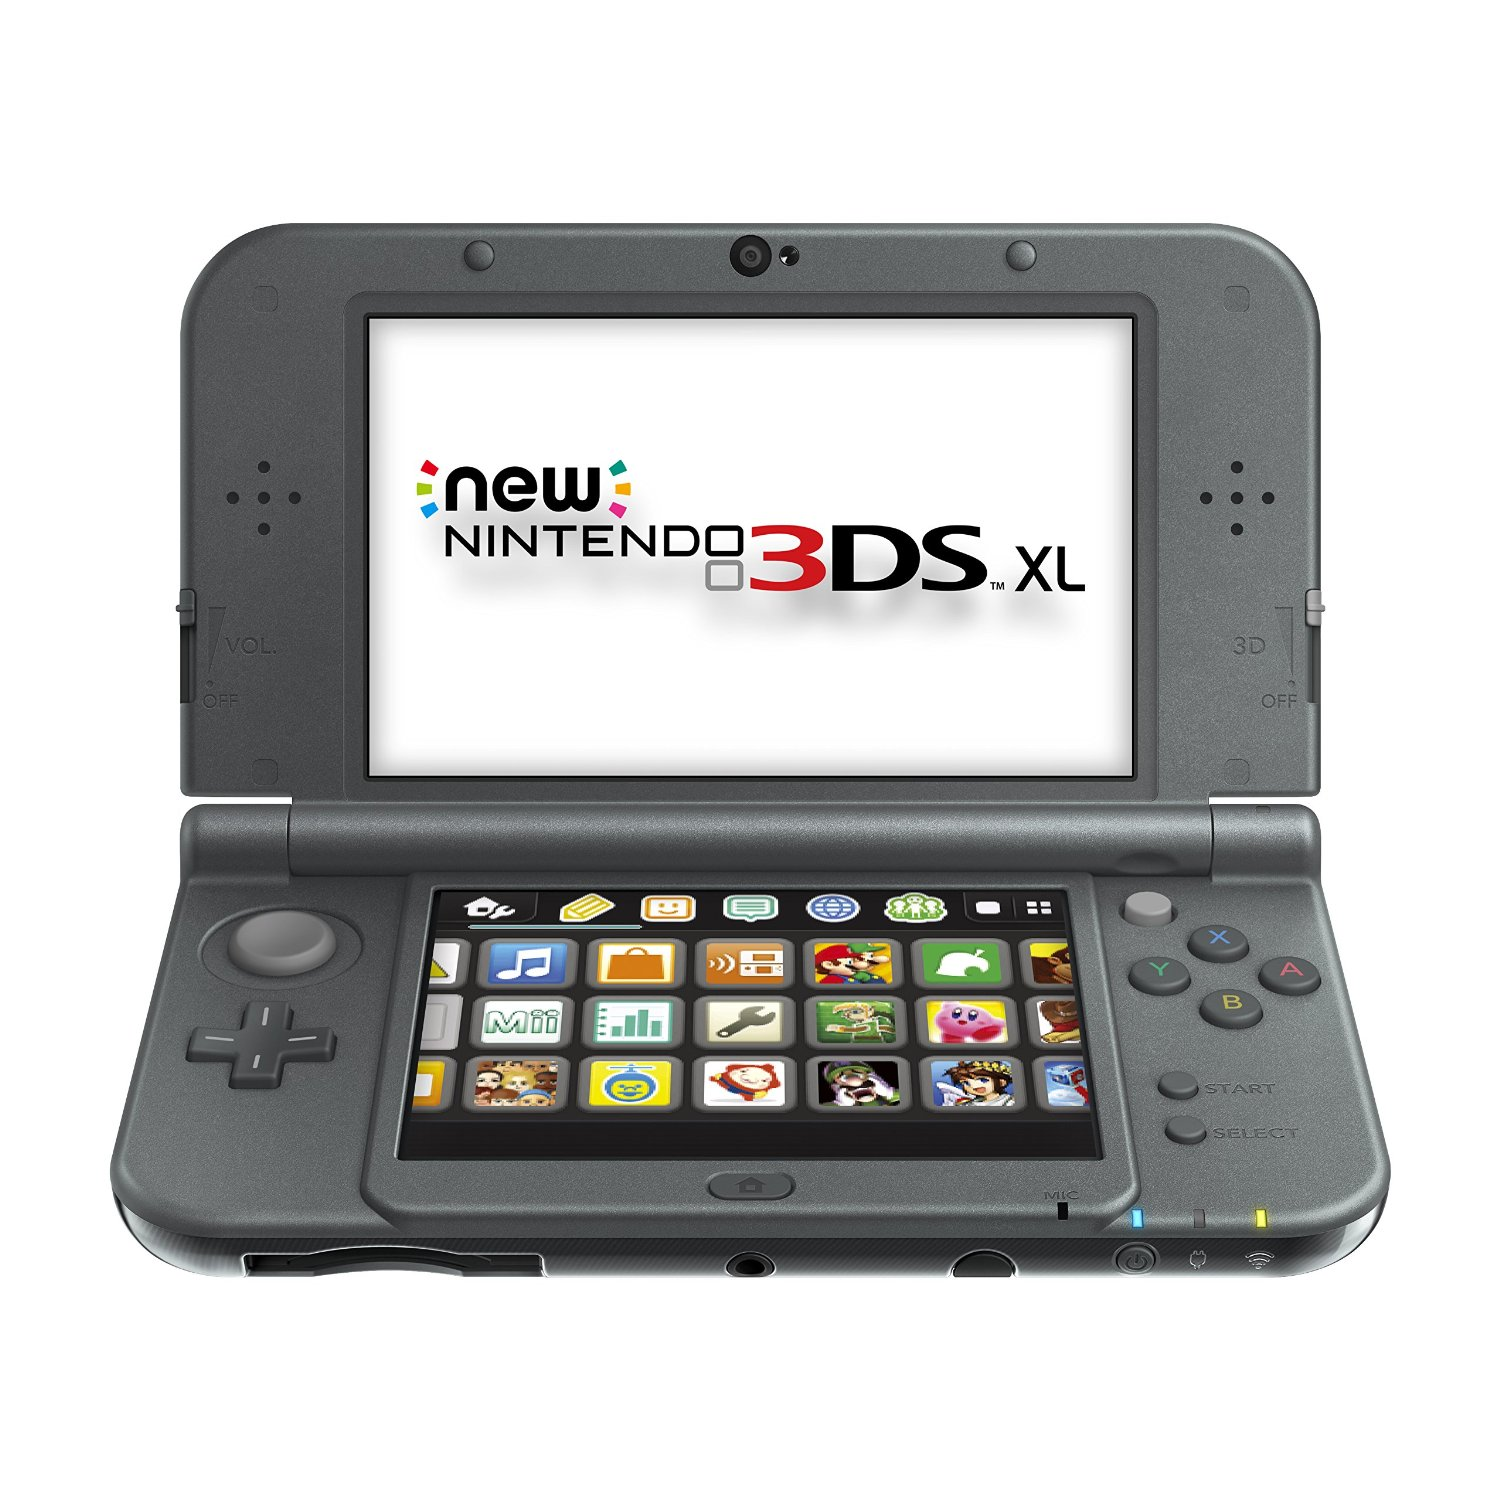 Nintendo 3DS XL Handheld Gaming Console (Black)